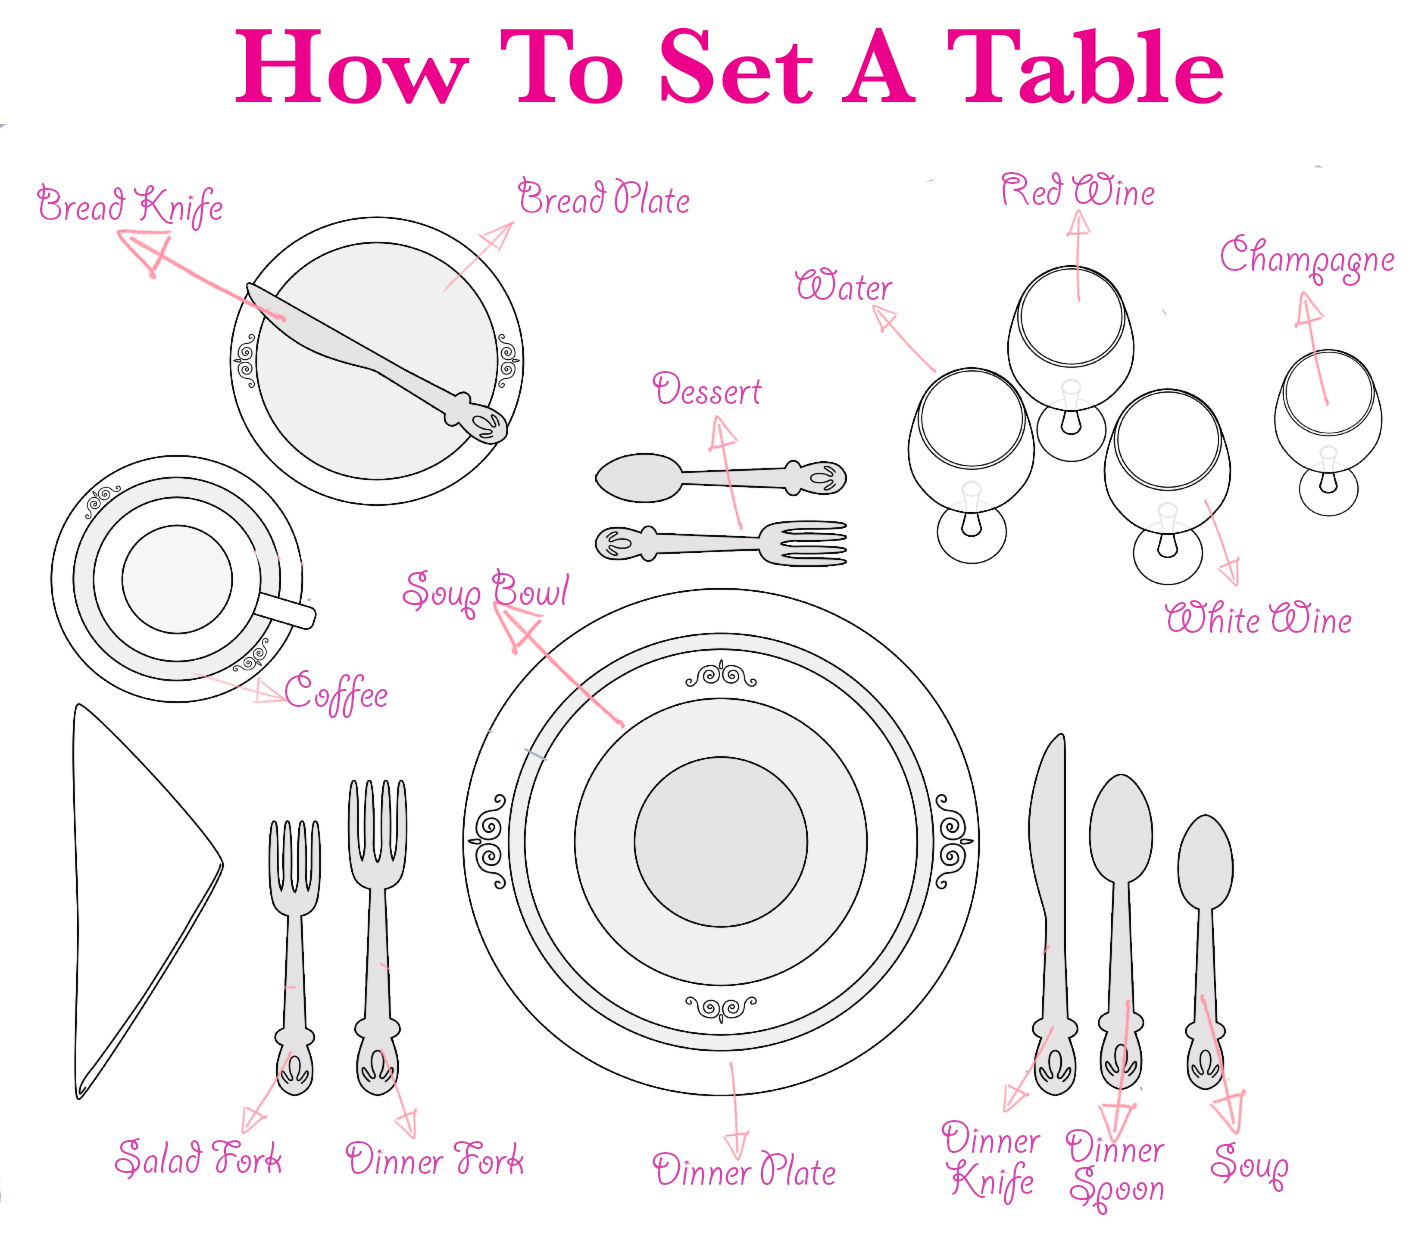 10 Gorgeous Table Setting Ideas + How To Set Your Table - shoproomideas